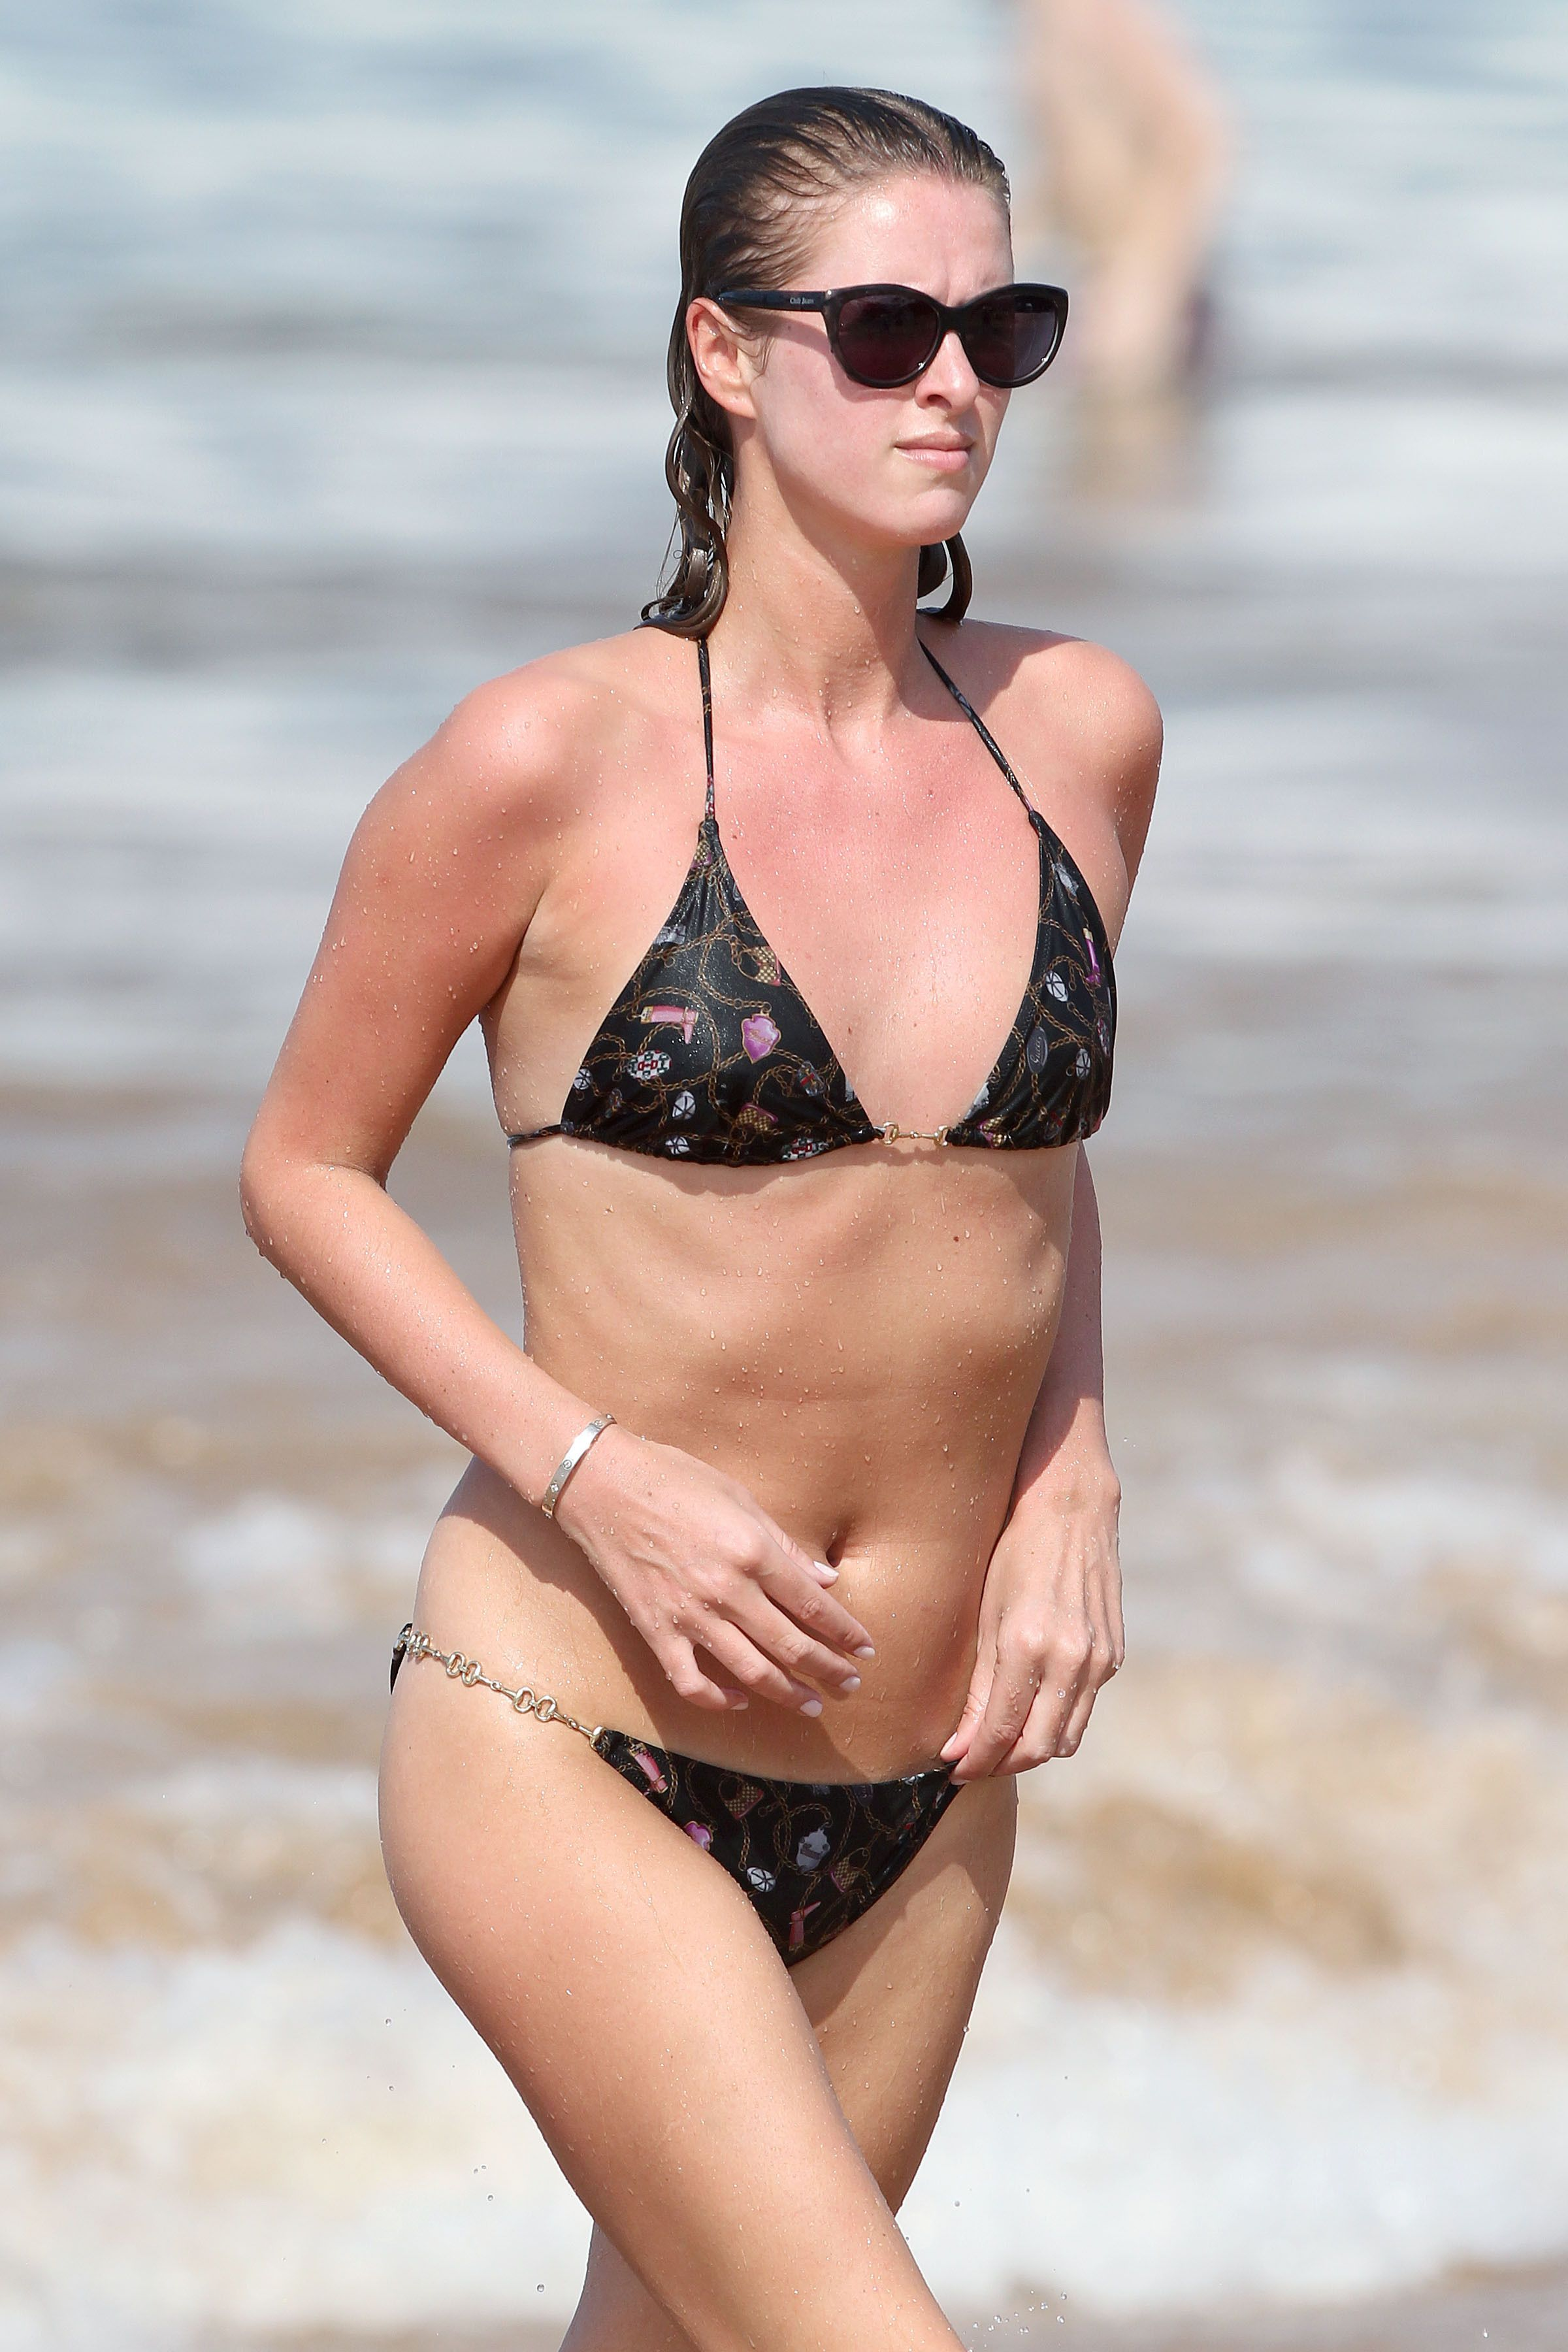 Nicky hilton sexy photos, pretty black shemale photo galleries